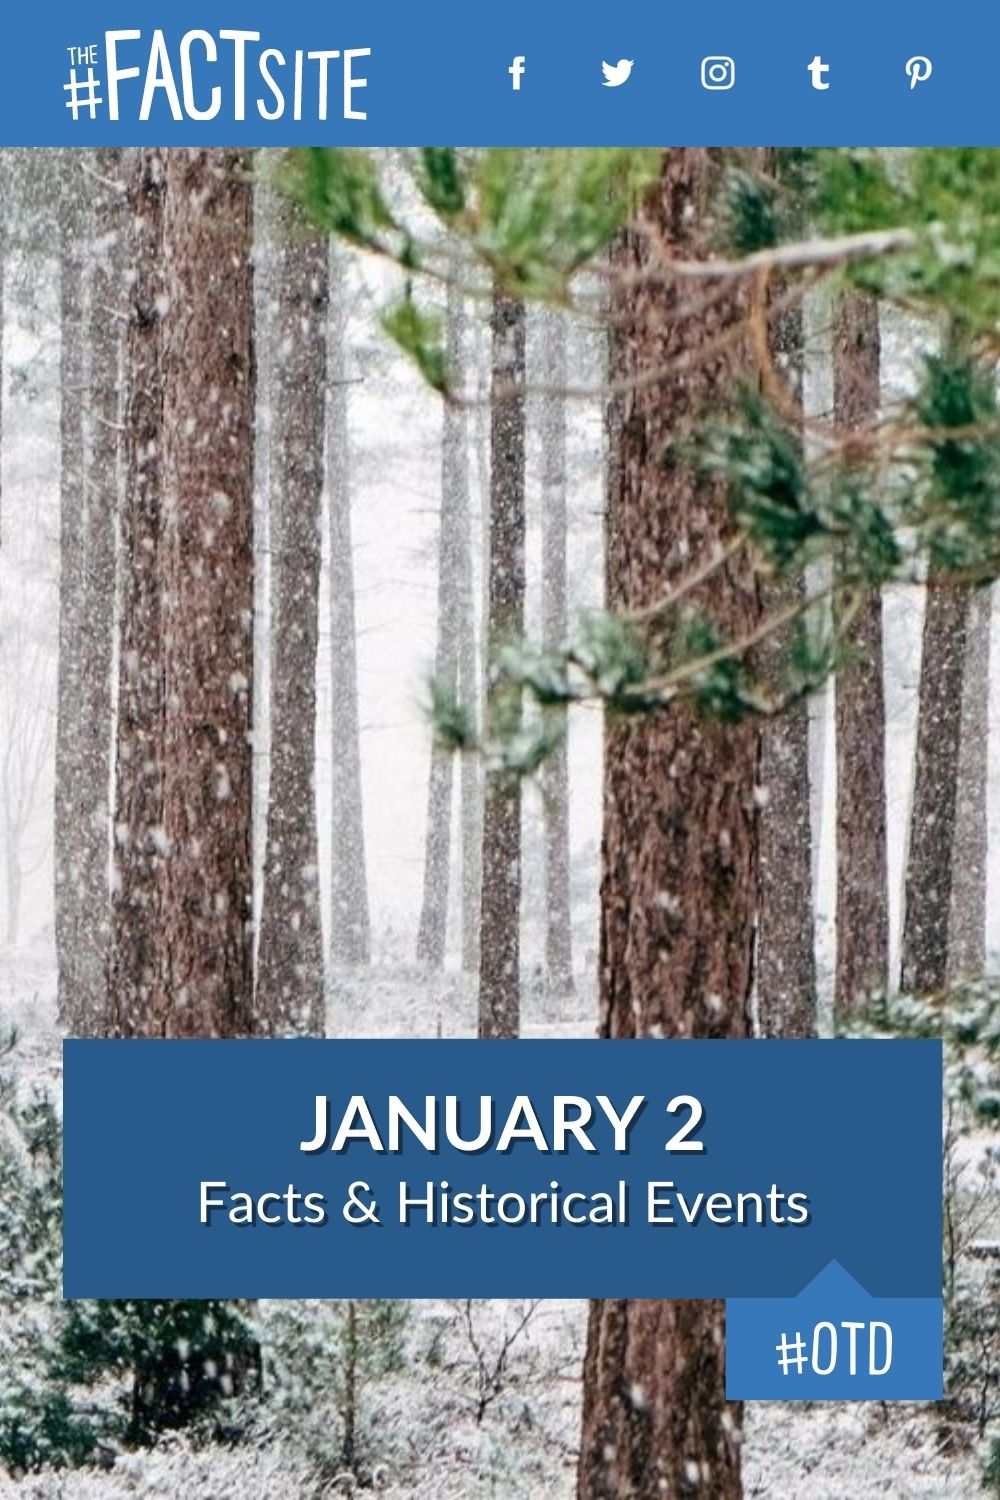 Facts & Historic Events That Happened on January 2